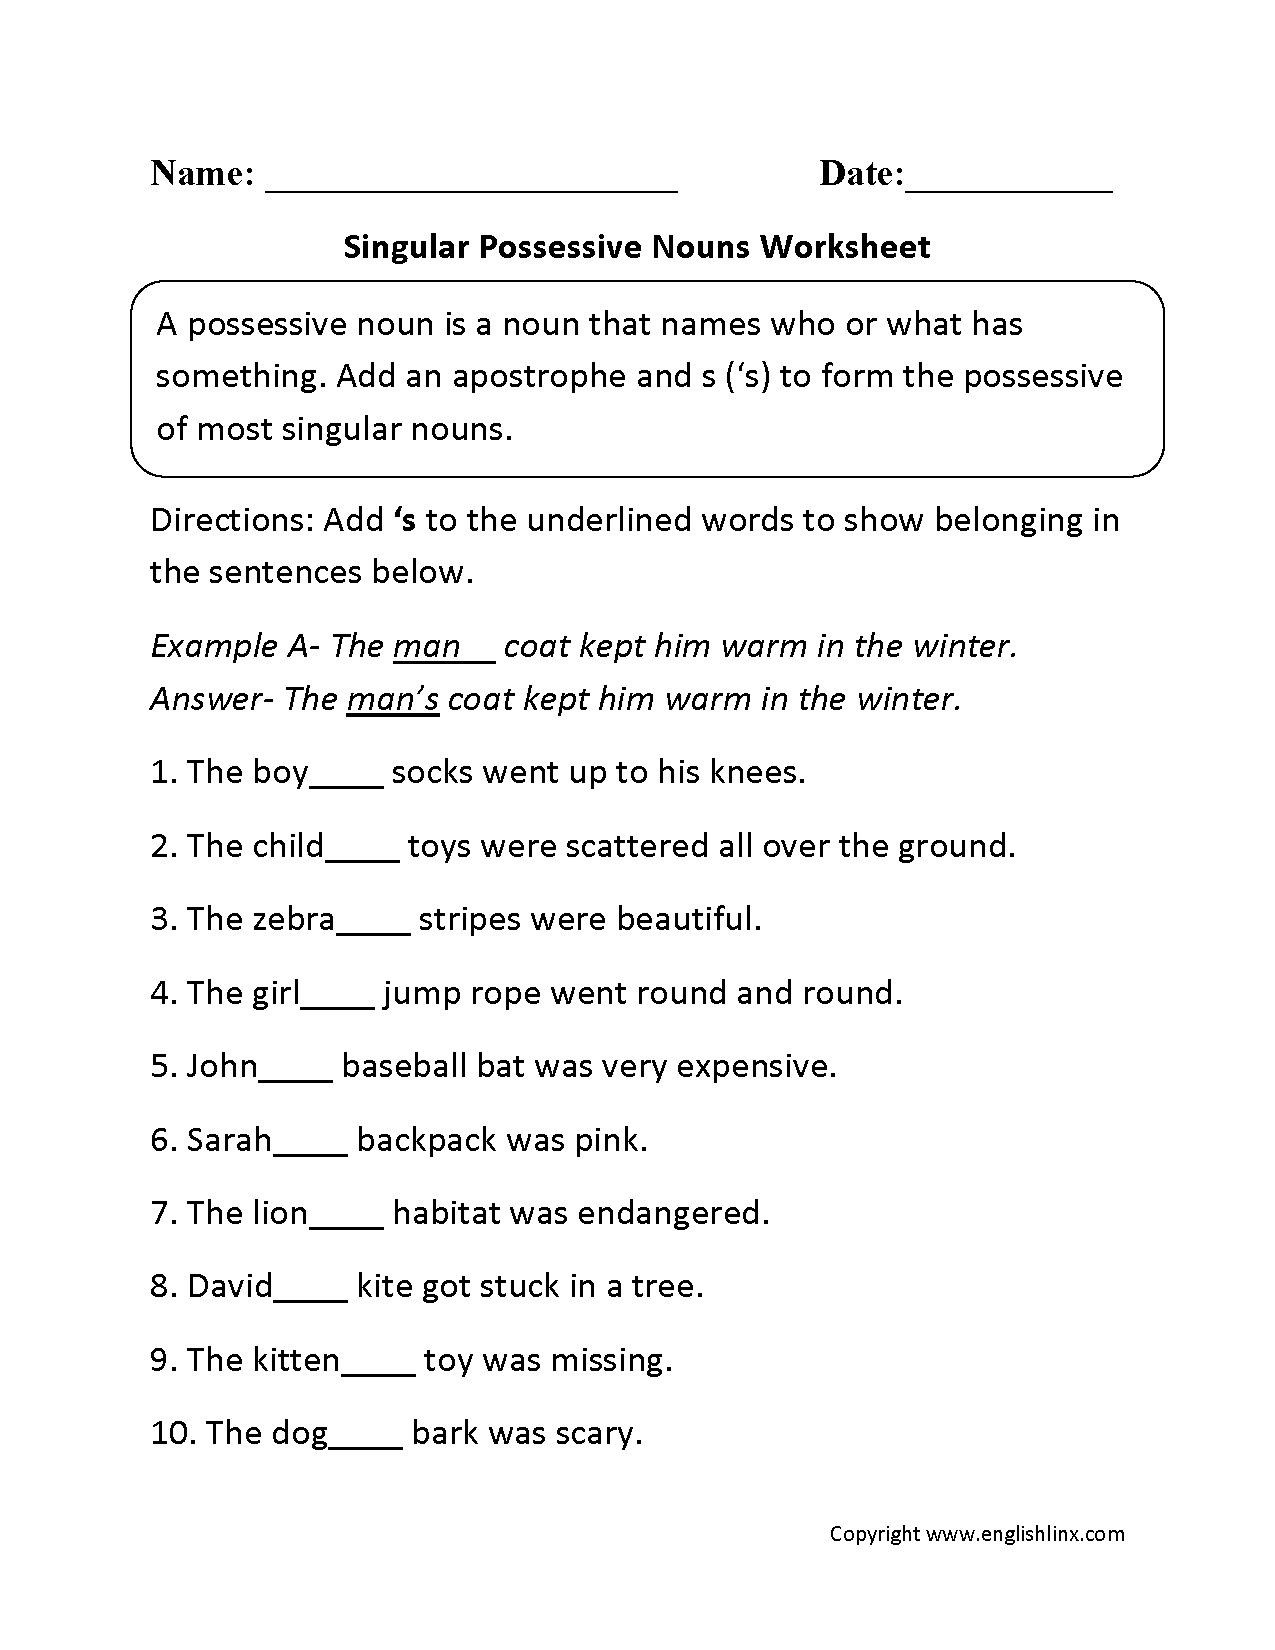 Possessive Nouns Worksheets 2nd Grade 5th Grade English Worksheets Nouns